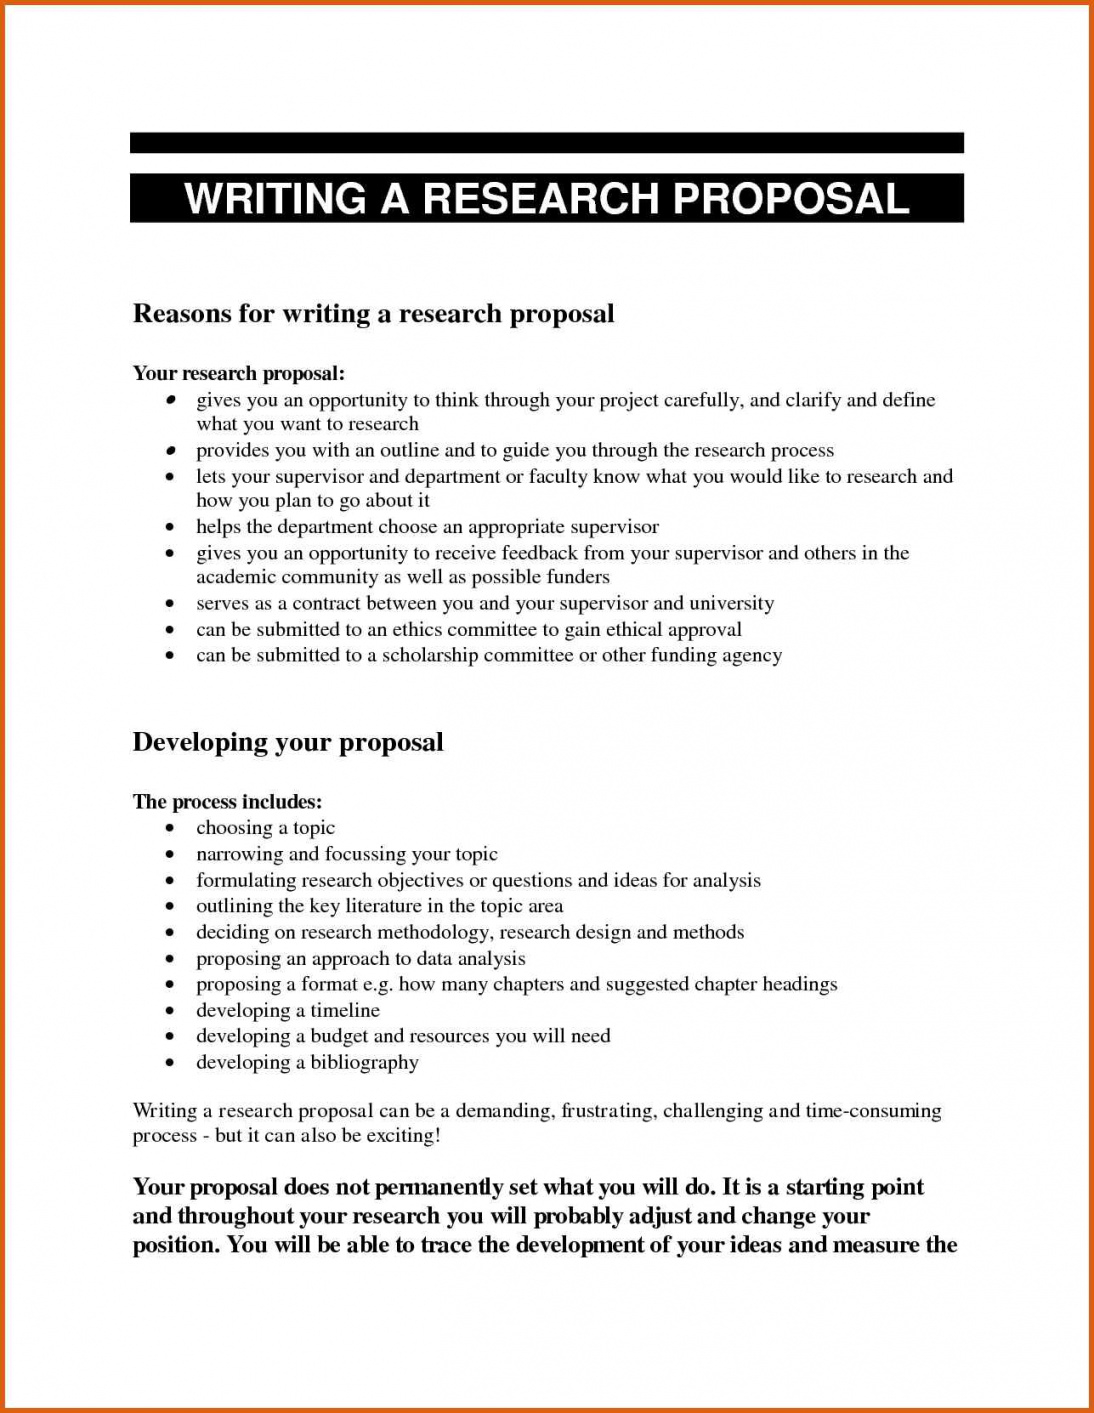 011 Gender Equality Essay Example Research Proposal Paper Topic Top Ideas Argumentative Pdf In Simple Words Full